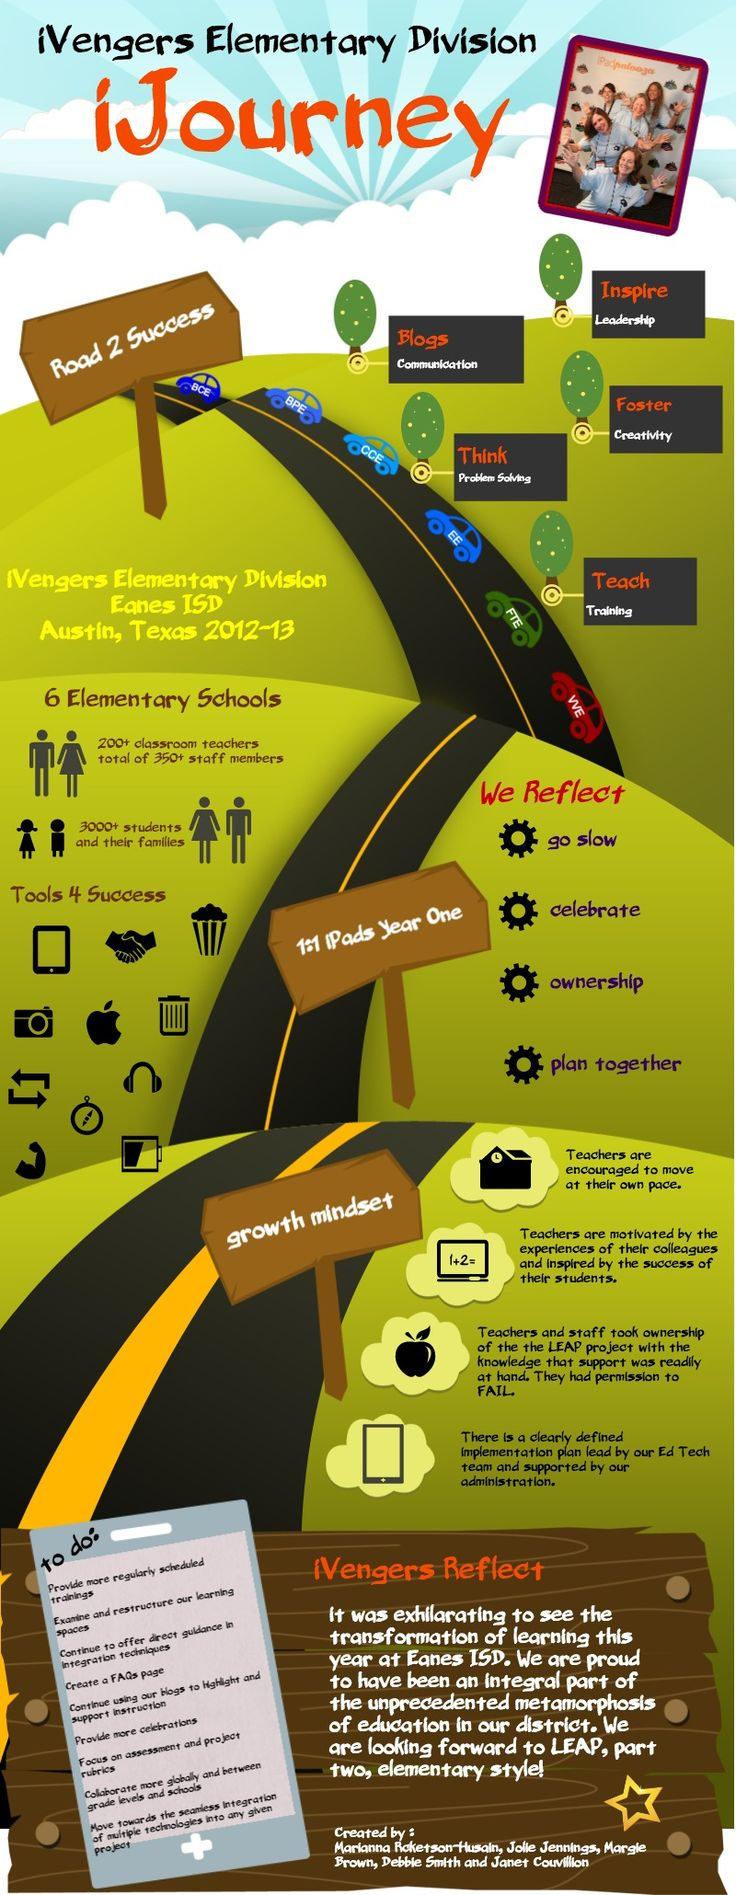 TOUCH this image: iVengers Elementary Division iJourney 1:1 Year ONE by mhusain